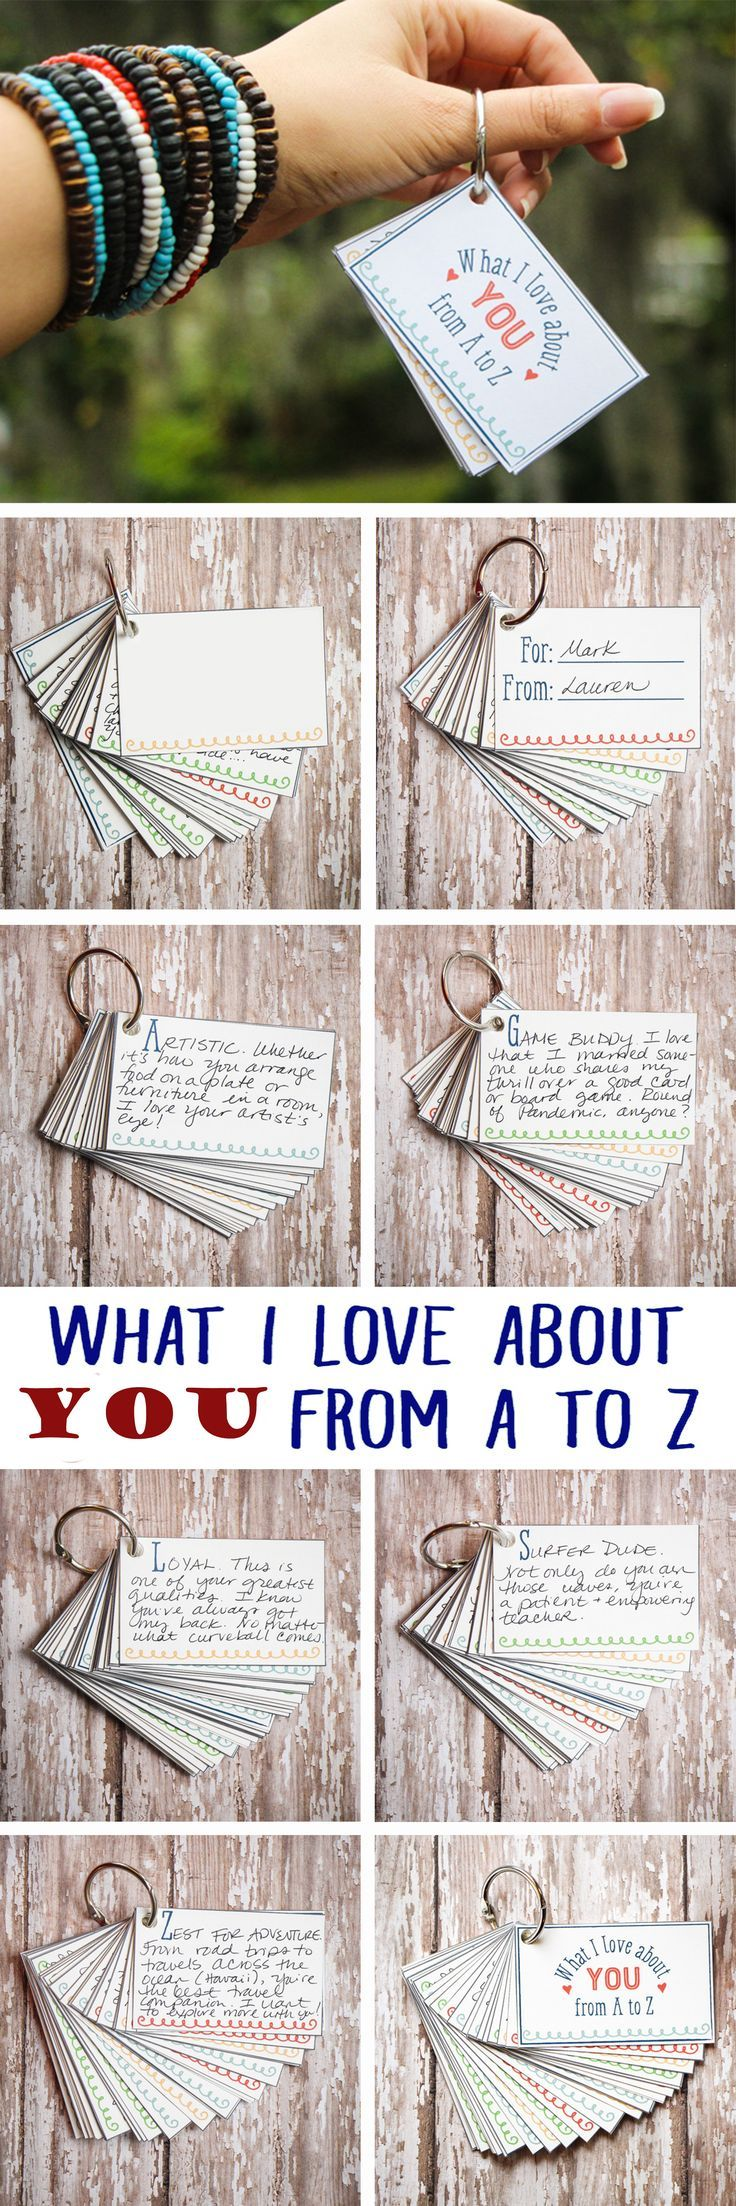 I Love About You from A to Z Mini-Book (Diy Geschenke Boyfriend)